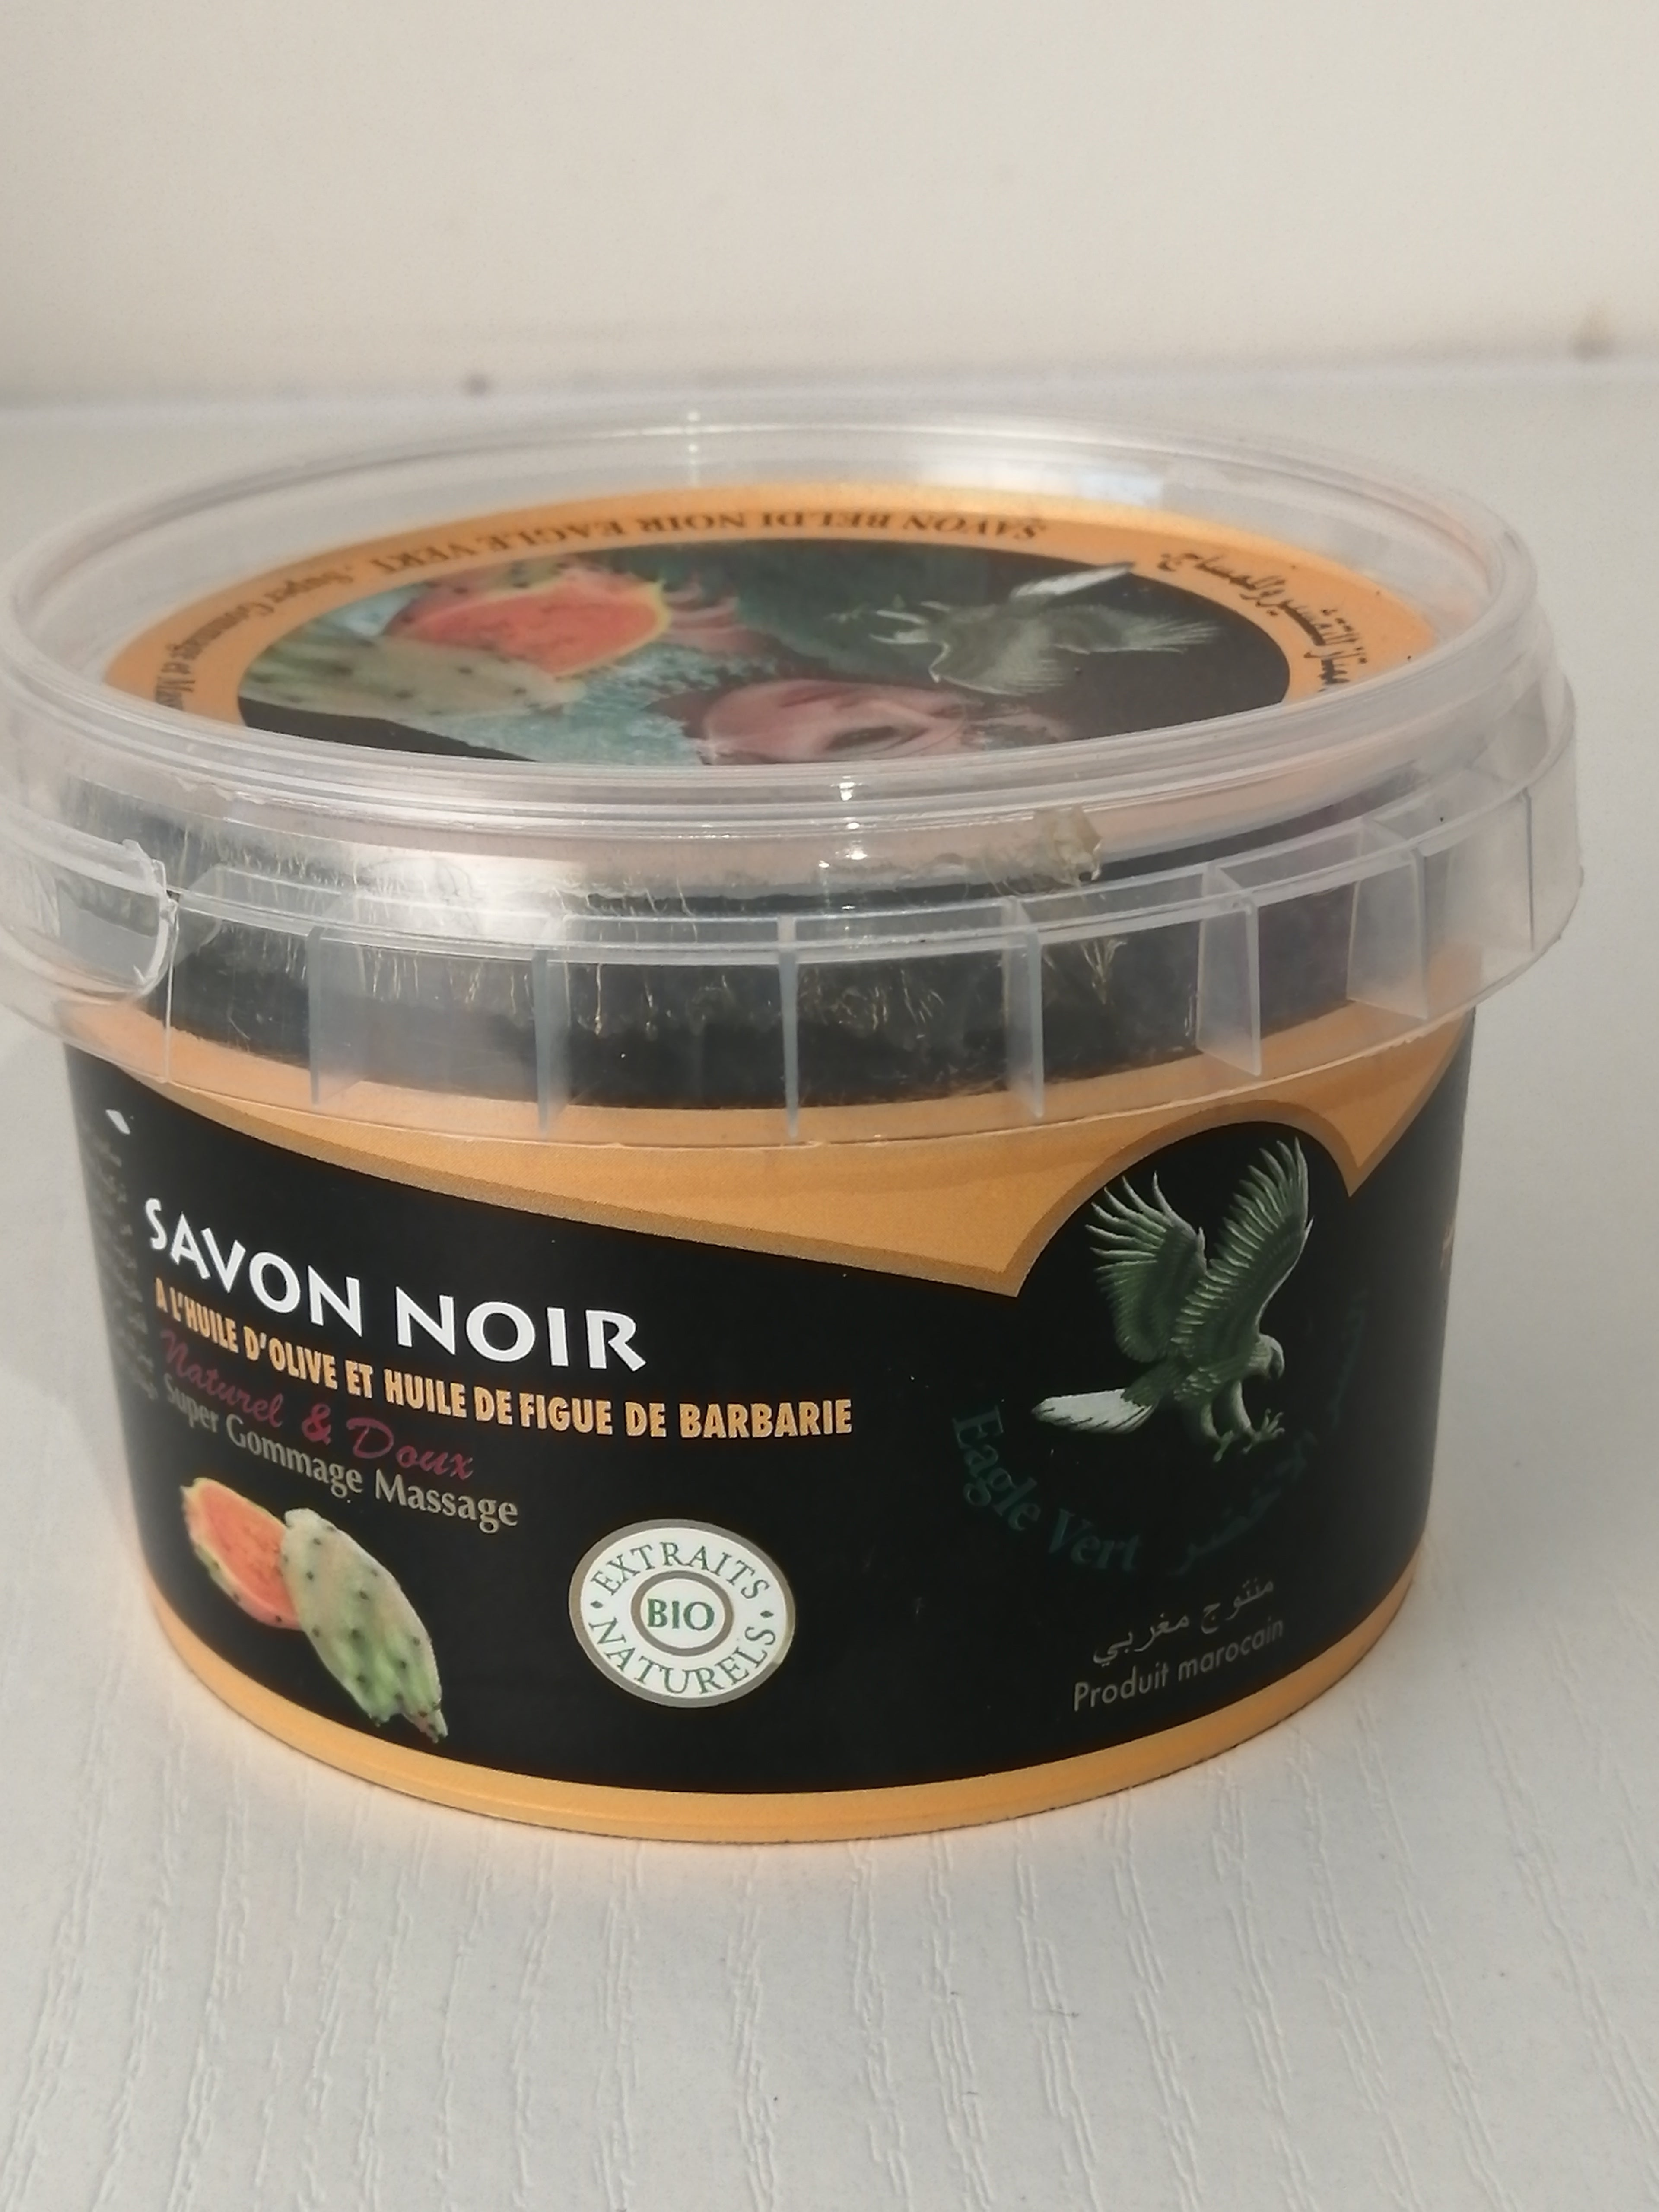 Savon noir figue de barbarie